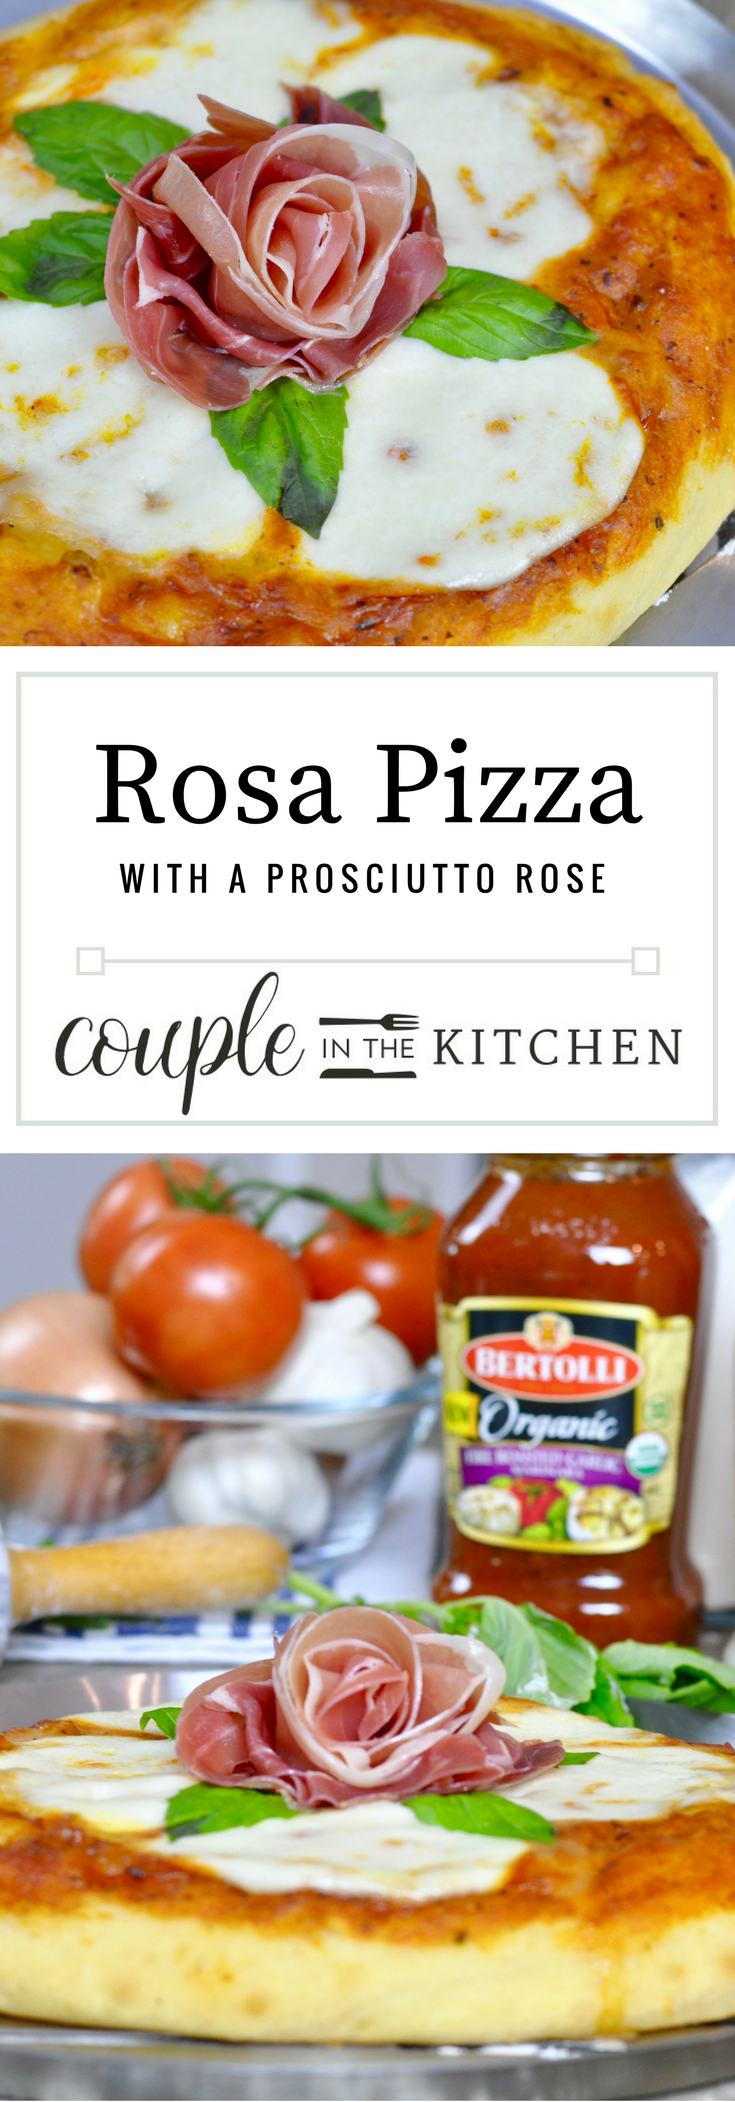 Homemade Pizza with a Prosciutto Rose | coupleinthekitchen.com